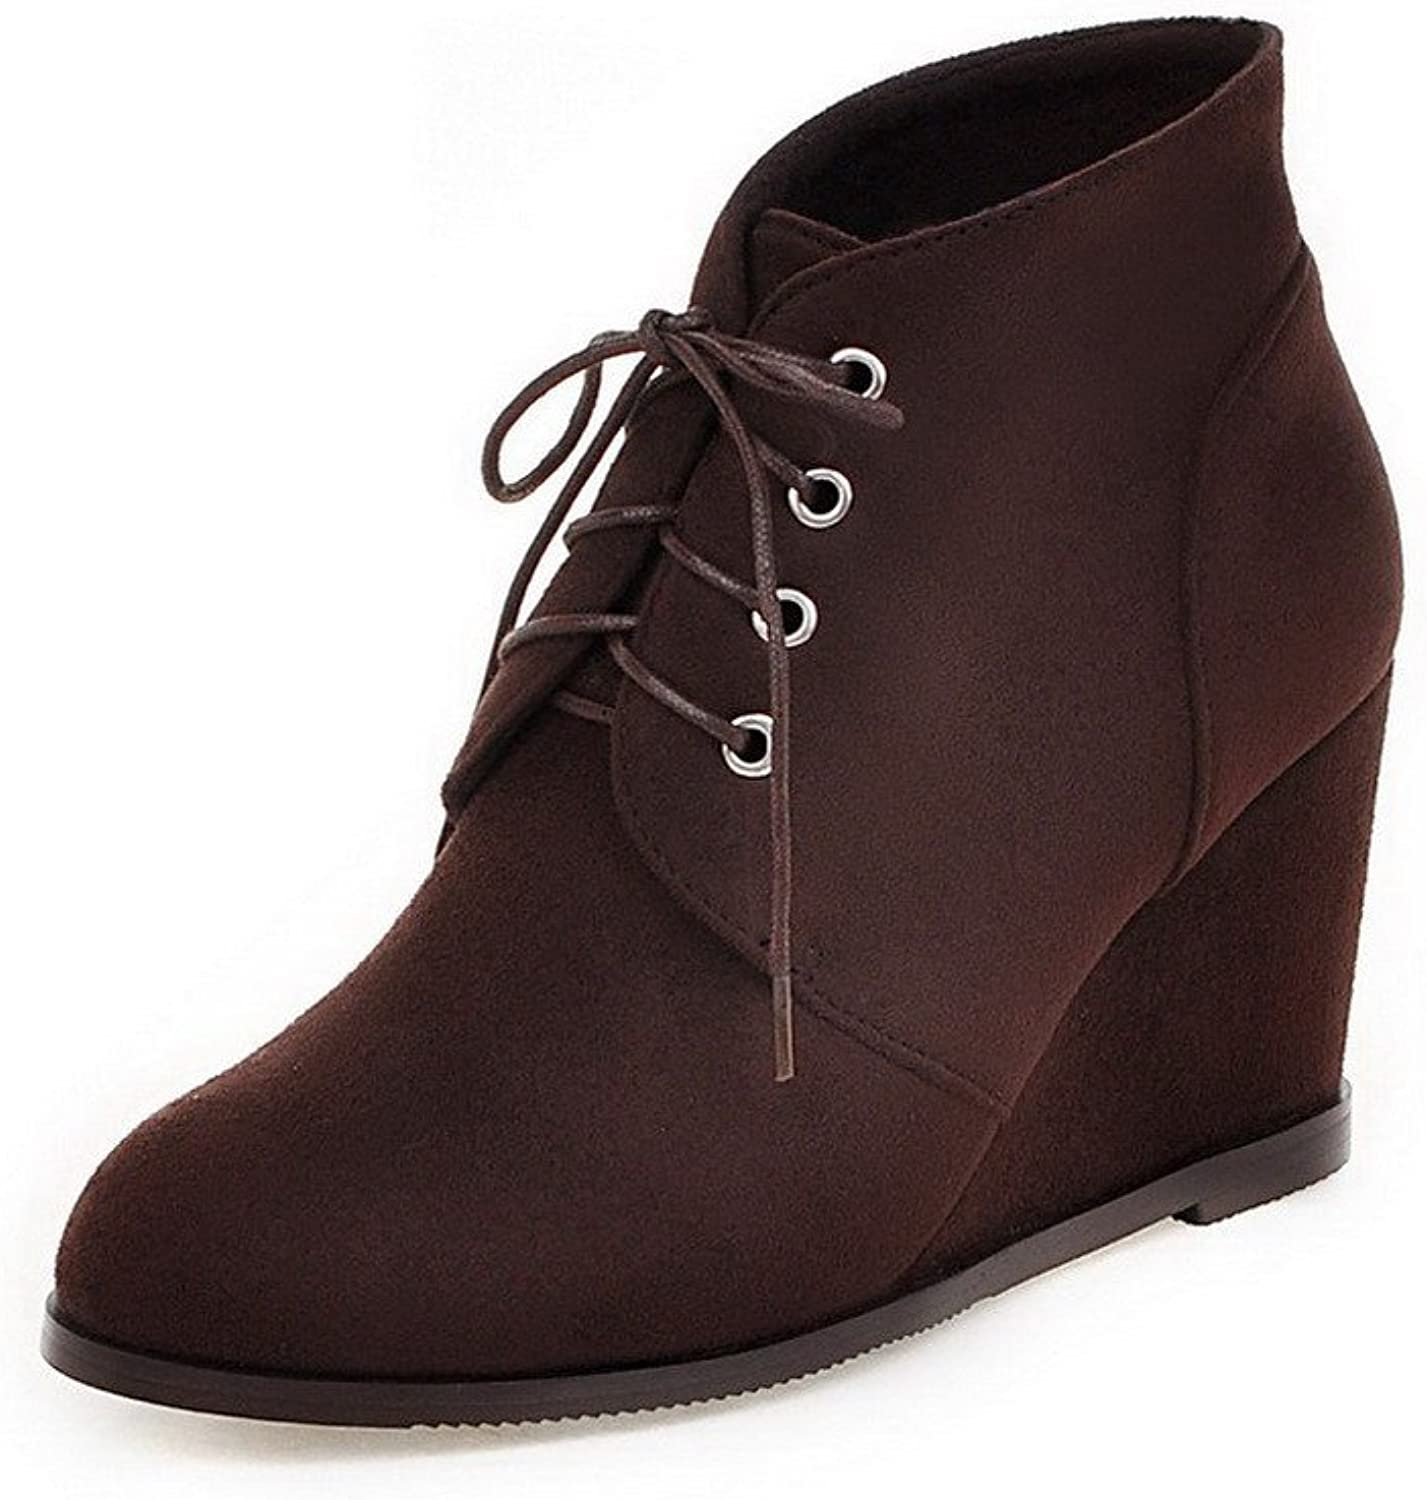 AmoonyFashion Women's Lace-up Round Closed Toe High Heels Fabric Surface Low Top Boots